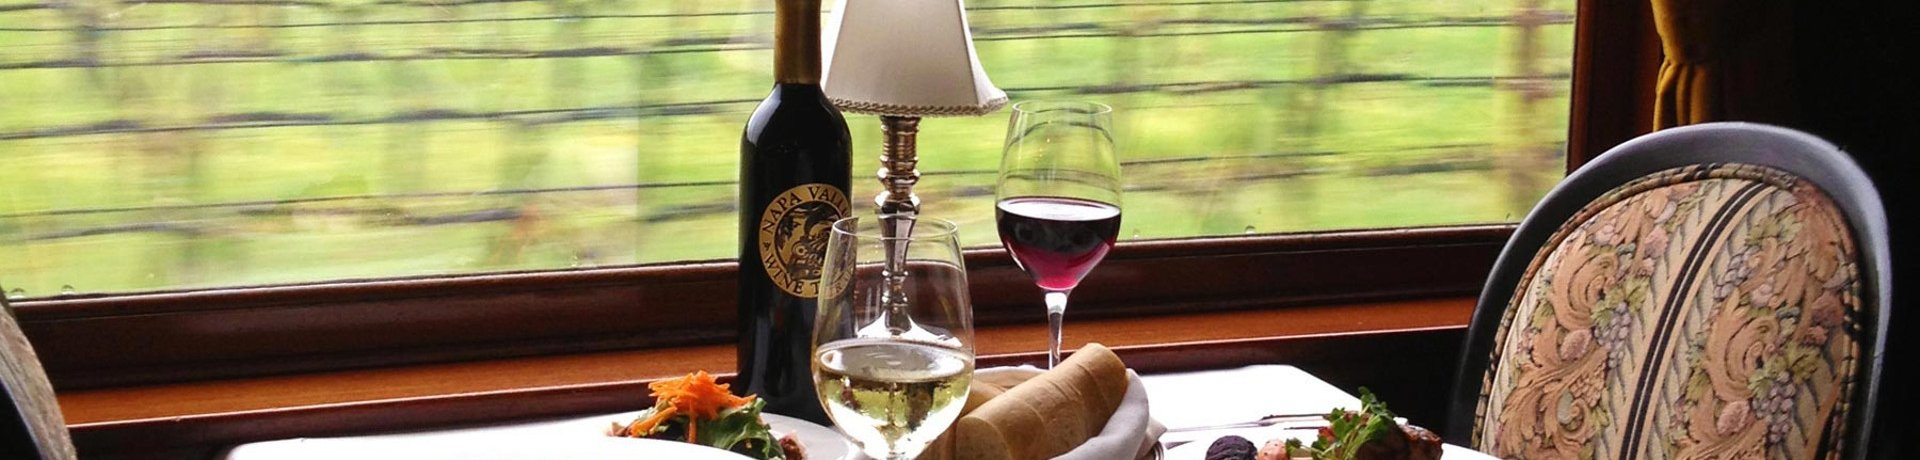 table set for dinner for two aboard Napa Valley Wine Train travelling through vineyard